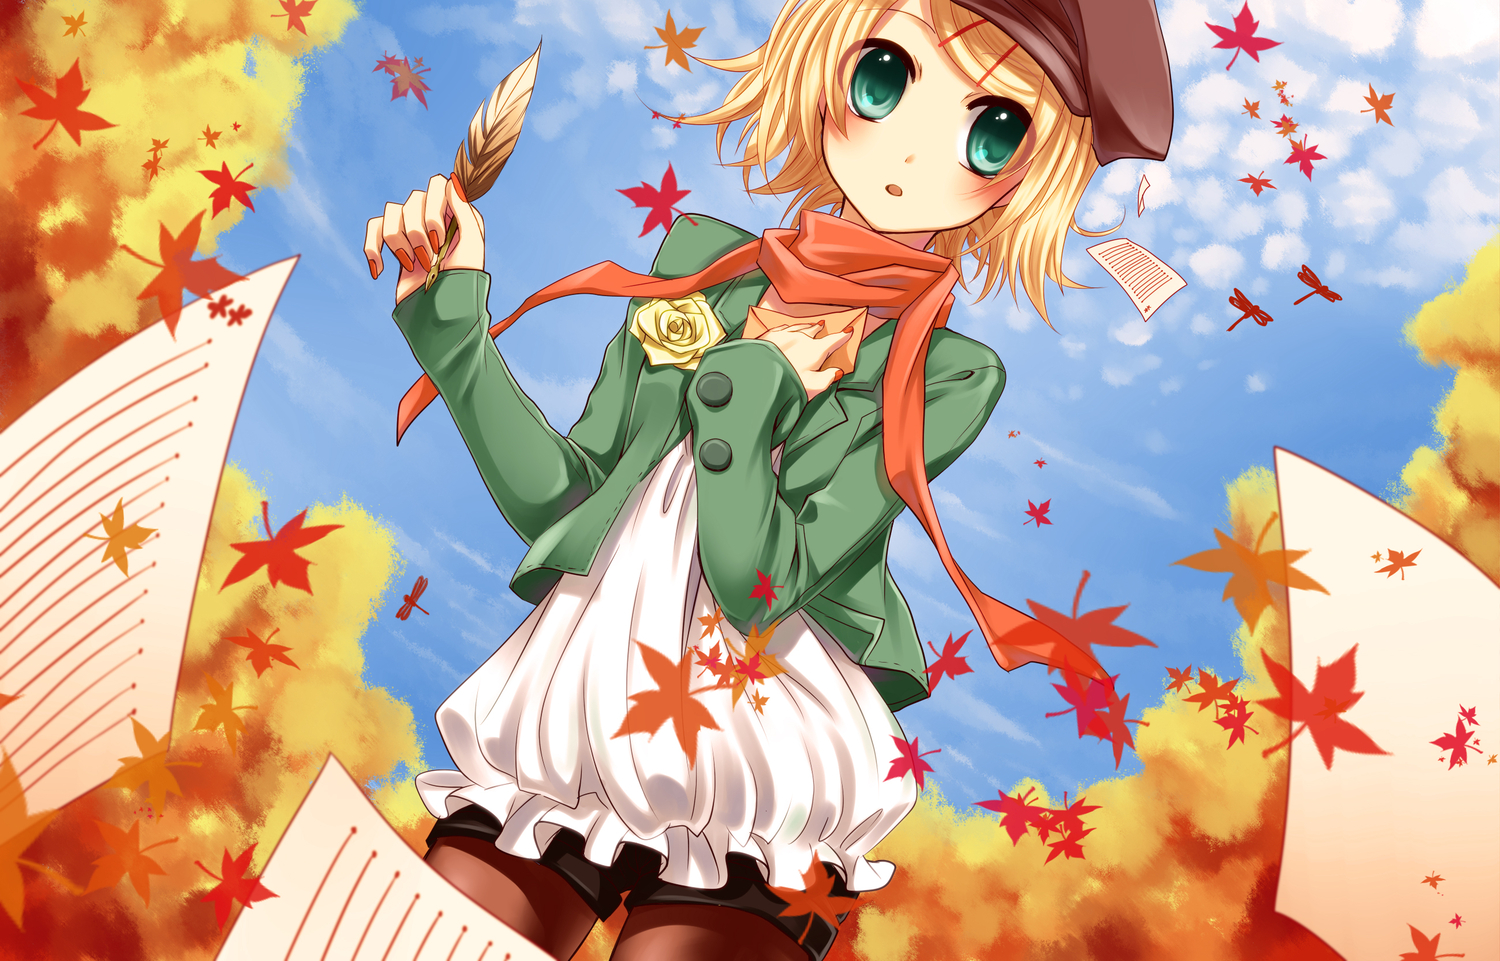 autumn blonde_hair feathers flowers green_eyes hat kagamine_rin leaves rose scarf sky vocaloid yayoi_(egoistic_realism)